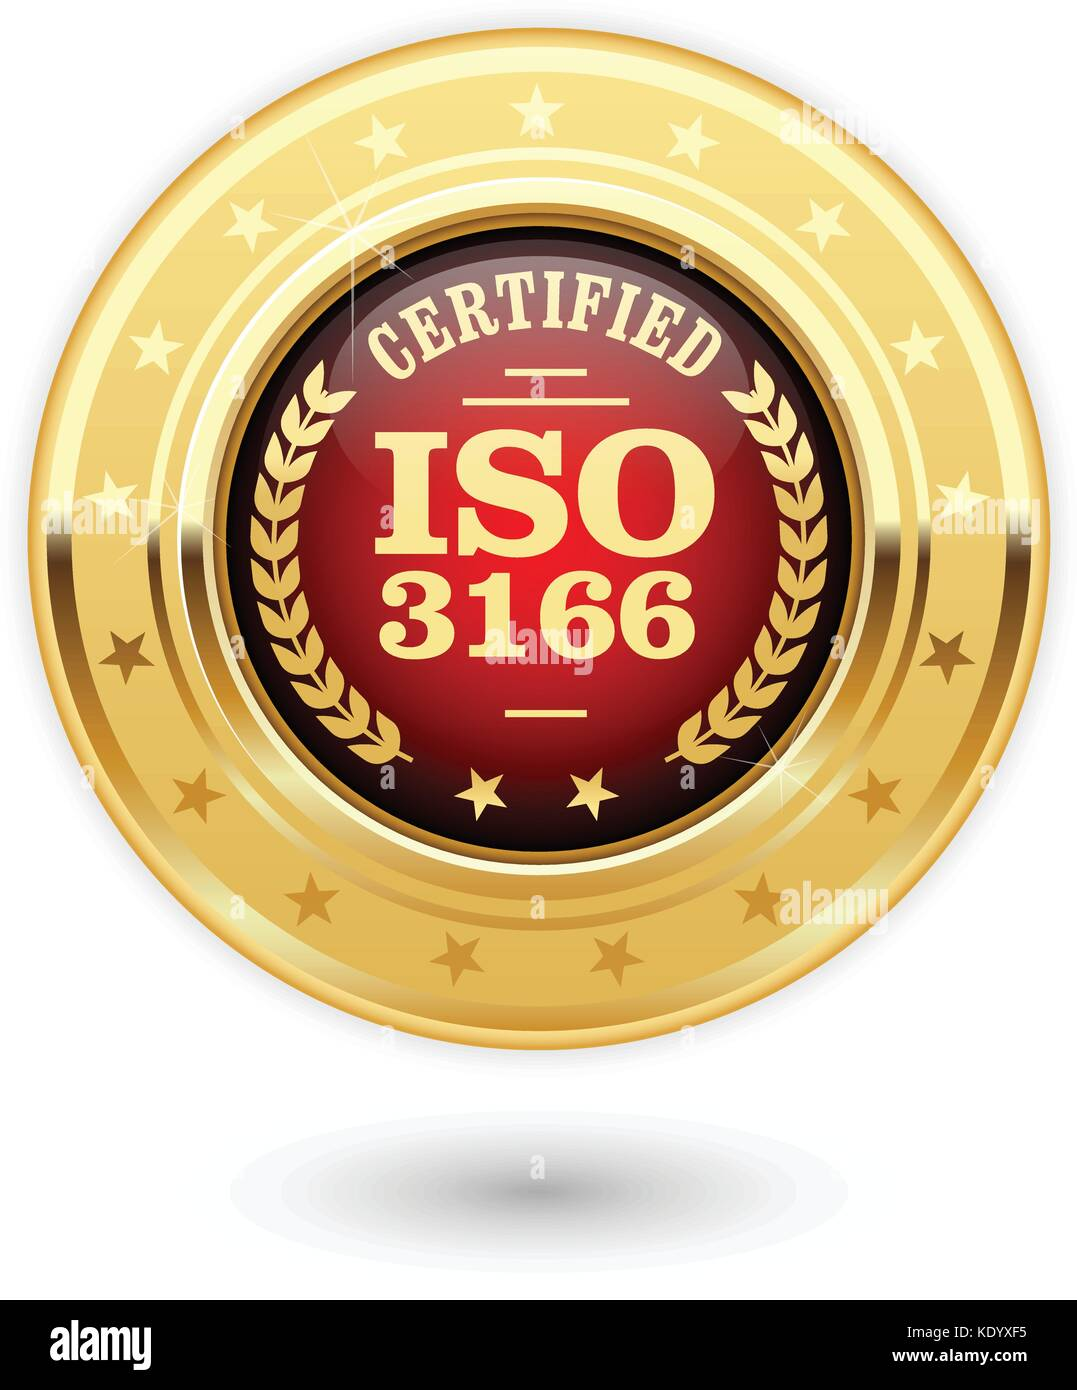 ISO 3166 certified medal - country codes Stock Vector Art